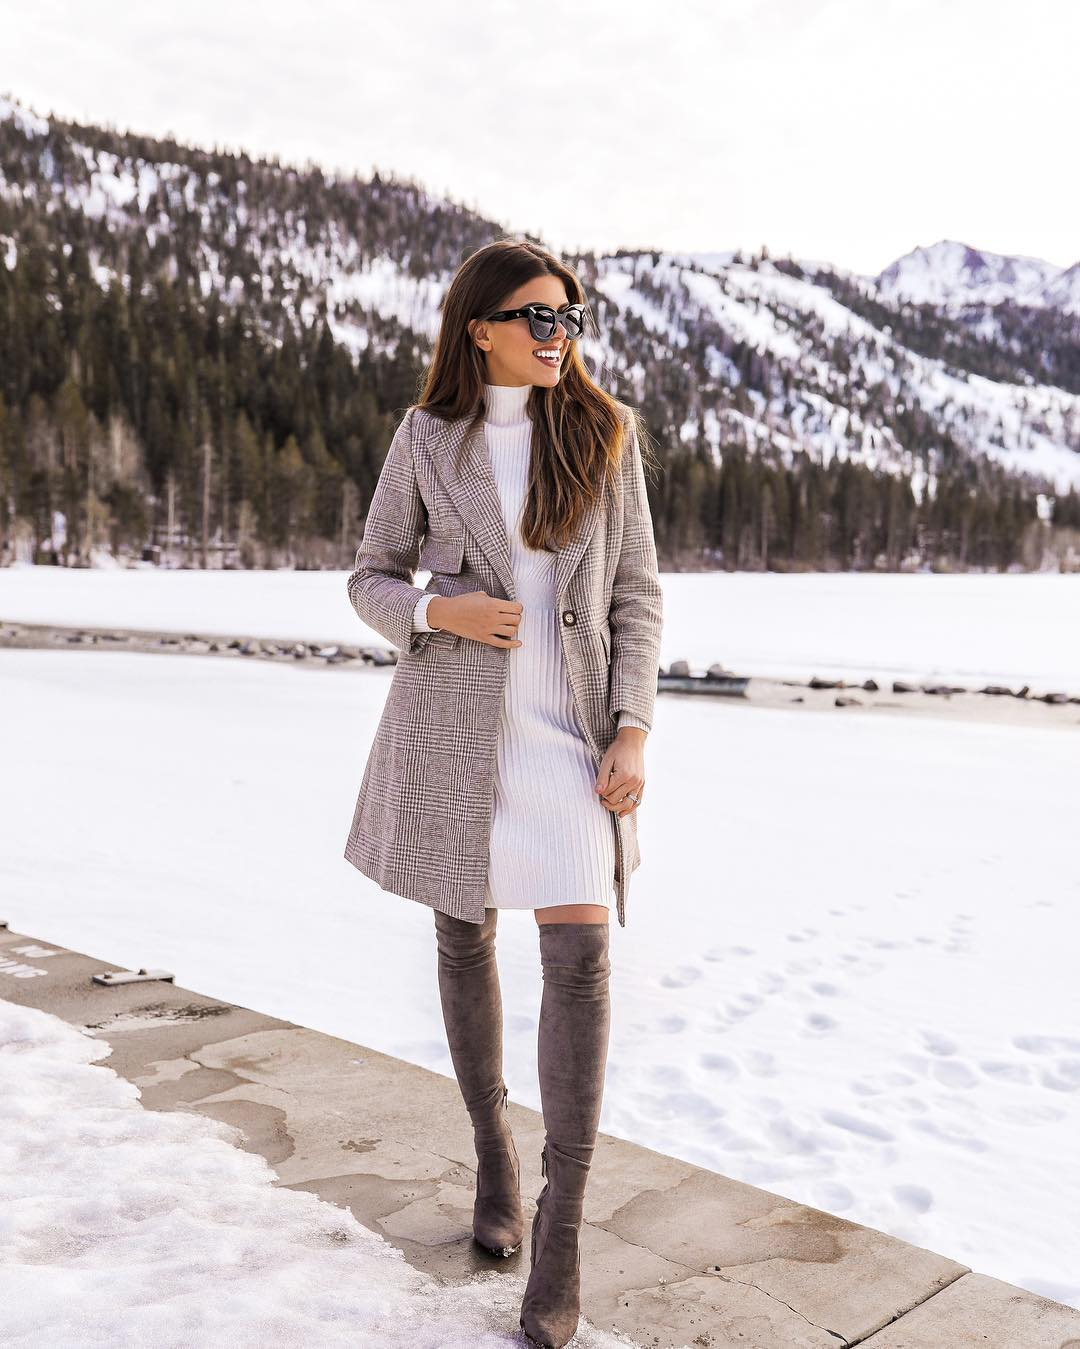 Checkered structured coat with white turtleneck dress and OTK boots for winter 2021